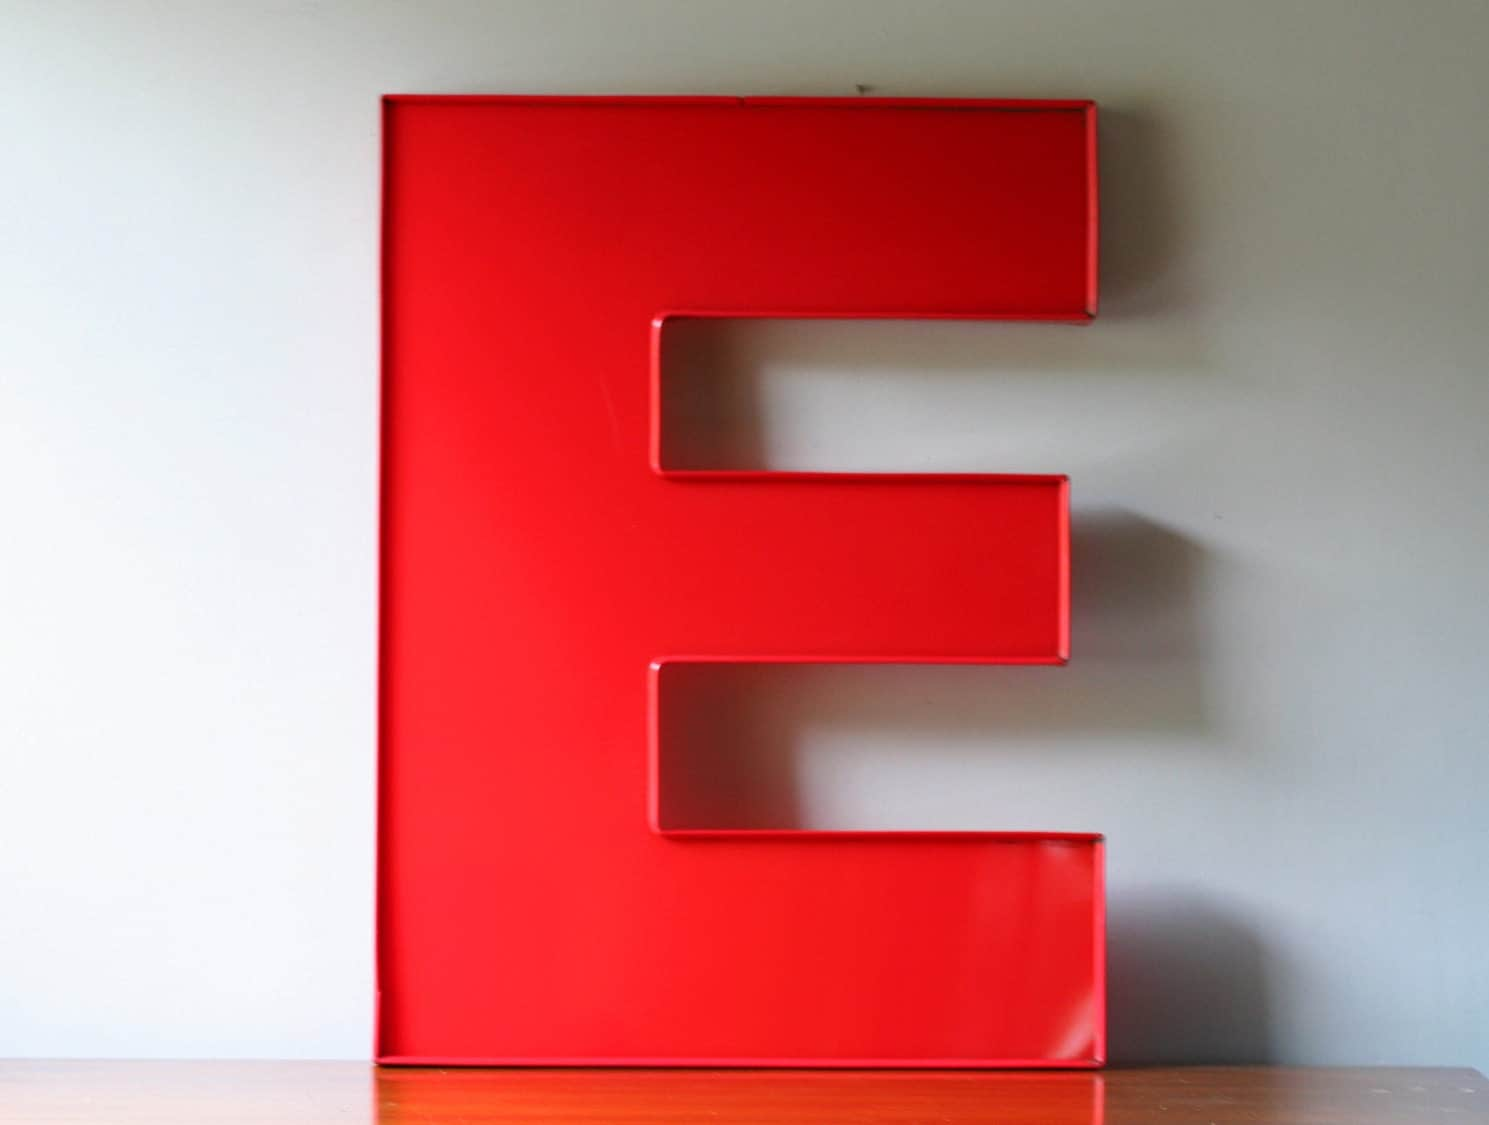 Large Vintage Red Letter E By Modishvintage On Etsy